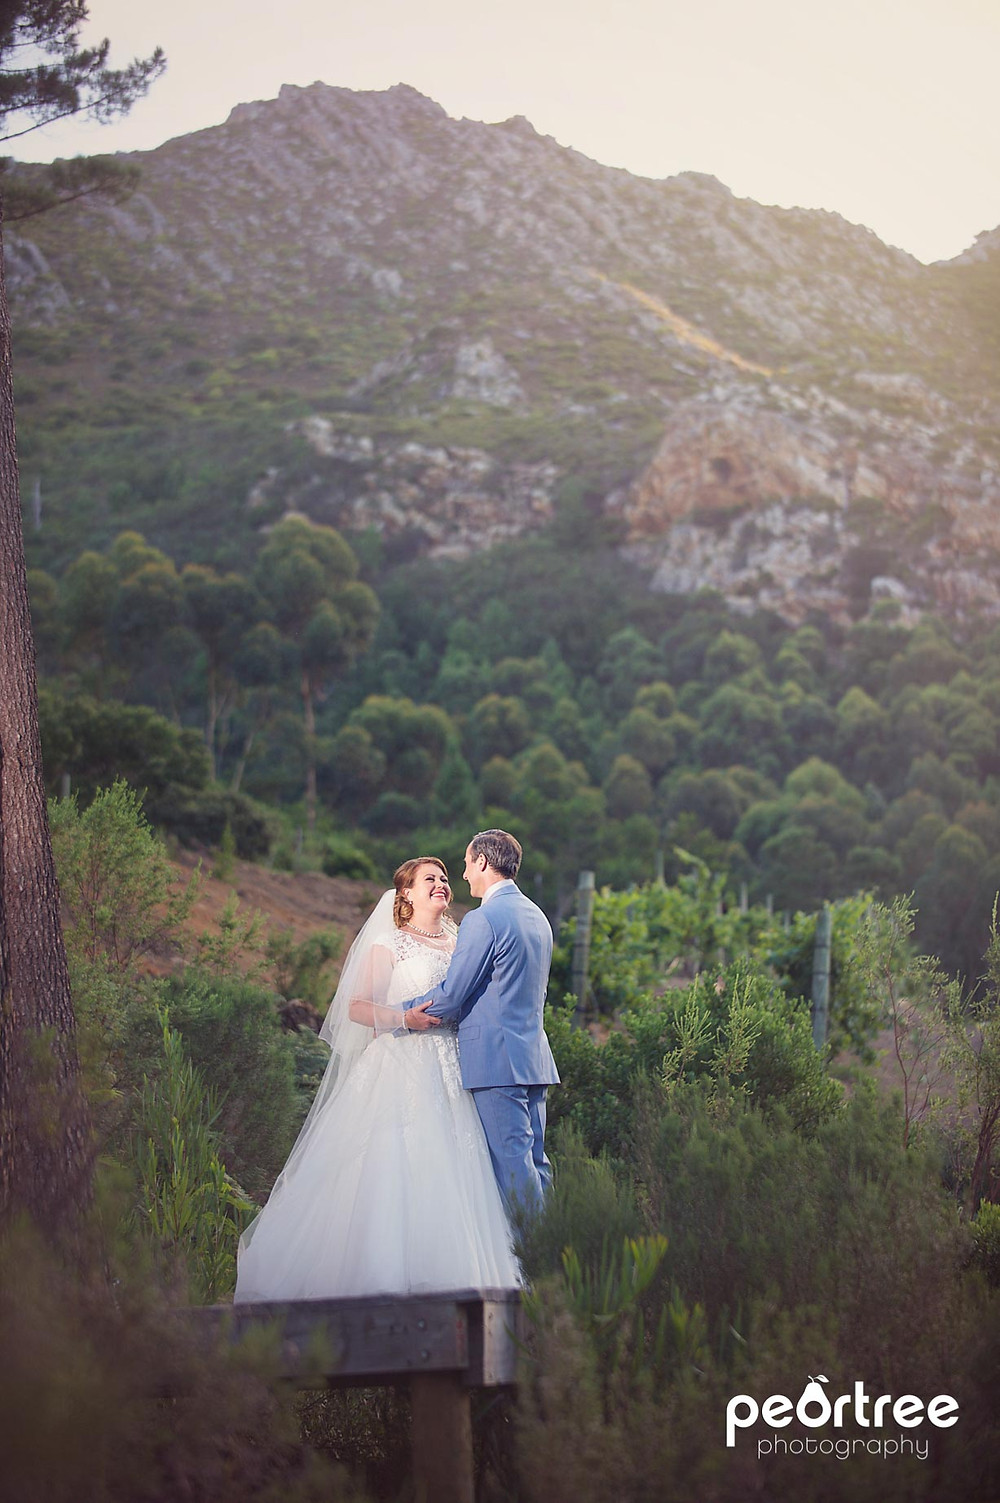 Peartree Photography | 150214 Nick_Marissa | http://peartree.co.za/blog/